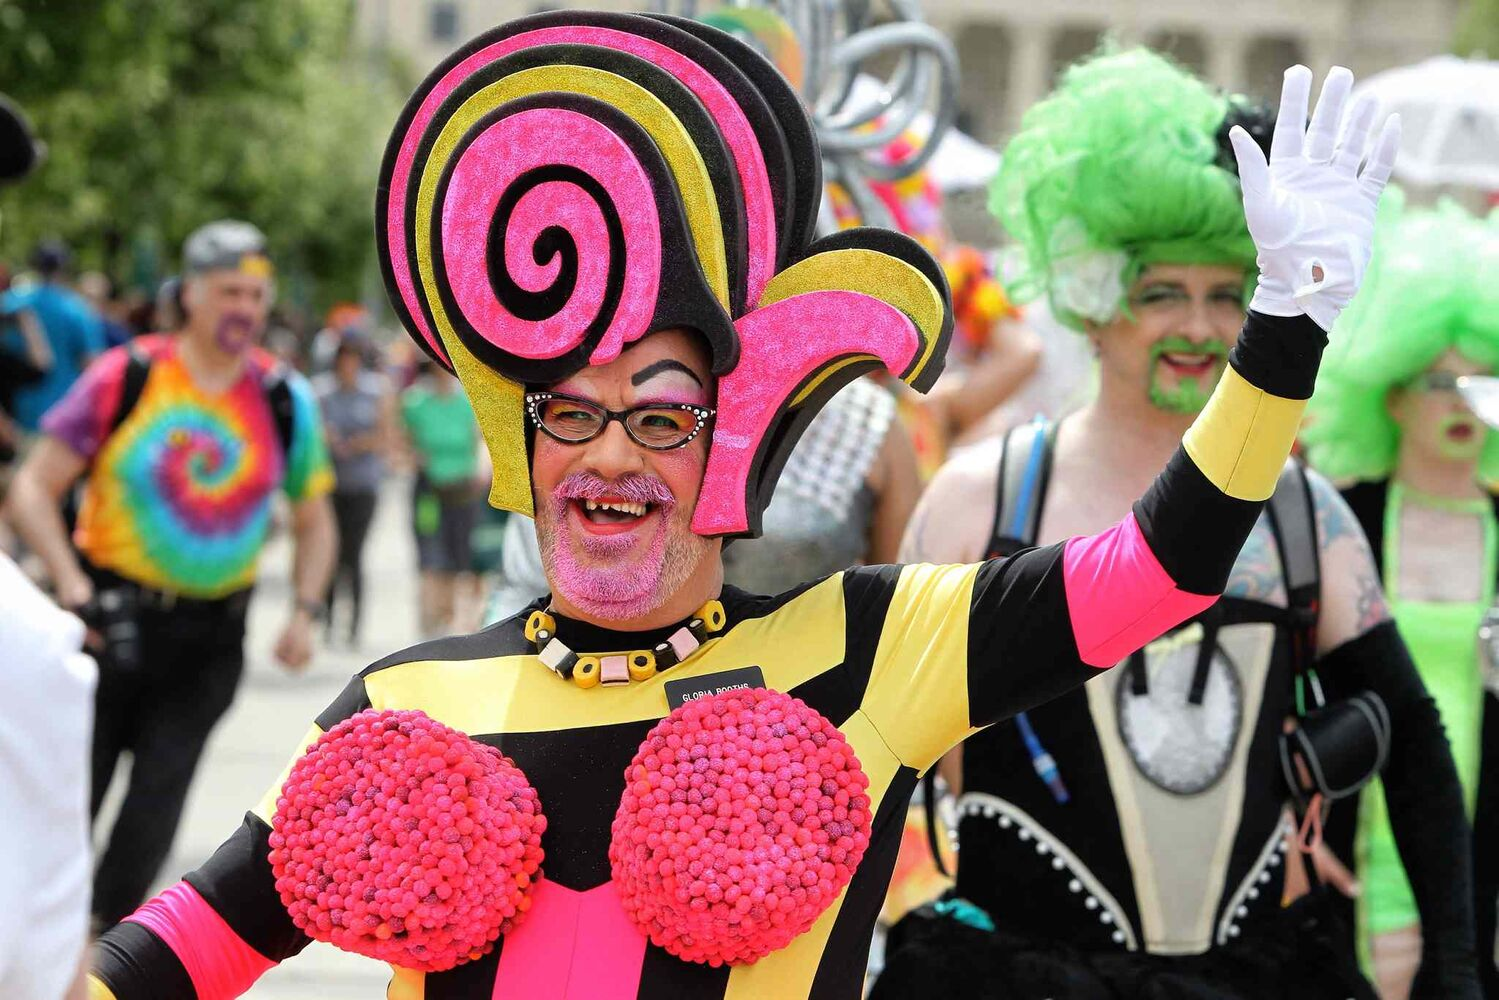 Participants in the 2014 Pride Parade take to downtown streets. (Mike Deal / Winnipeg Free Press)